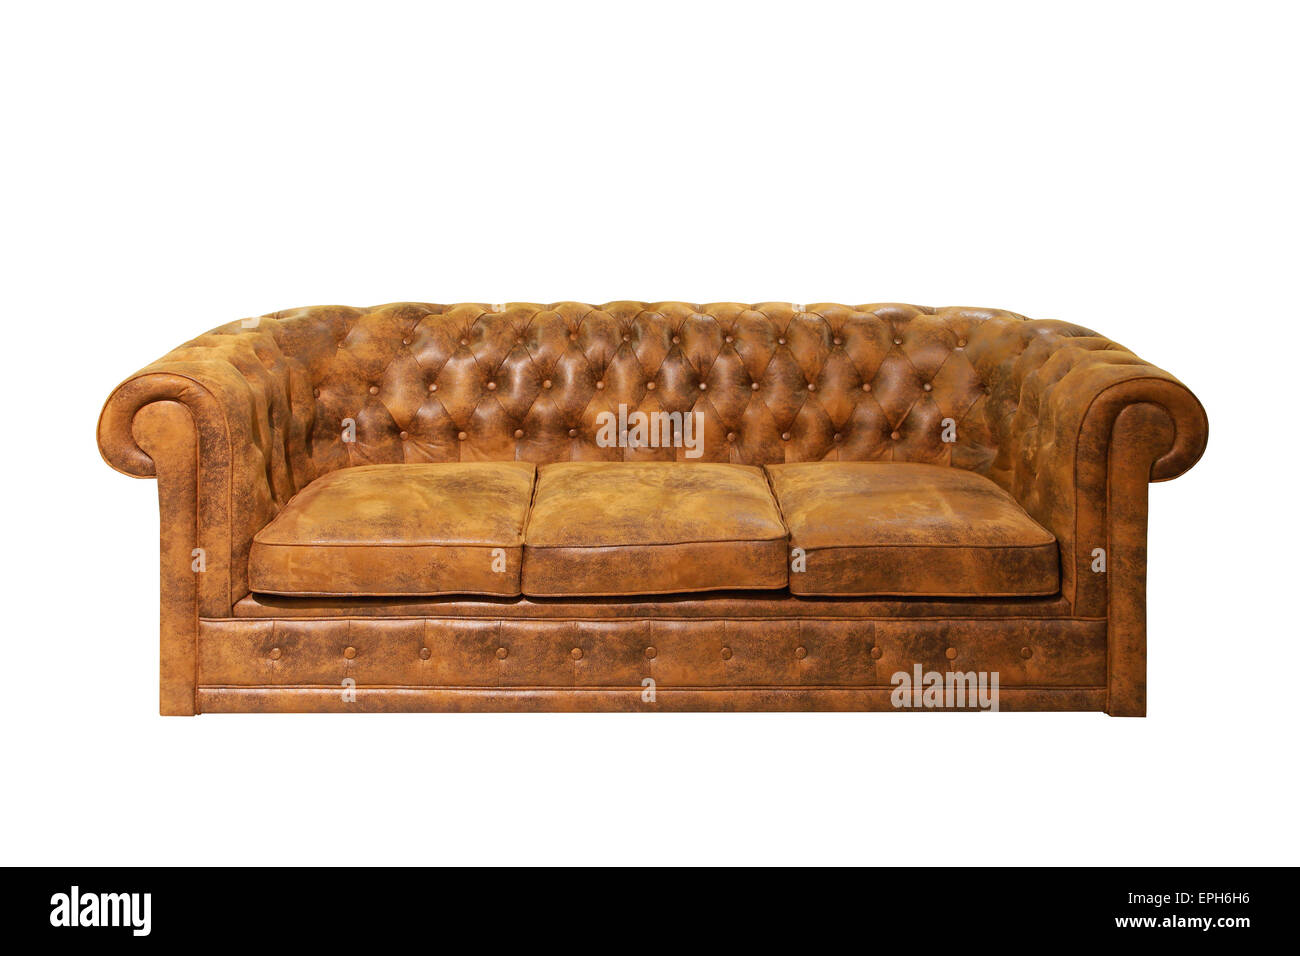 Brown Chesterfield Sofa Stock Photos & Brown Chesterfield Sofa Stock ...